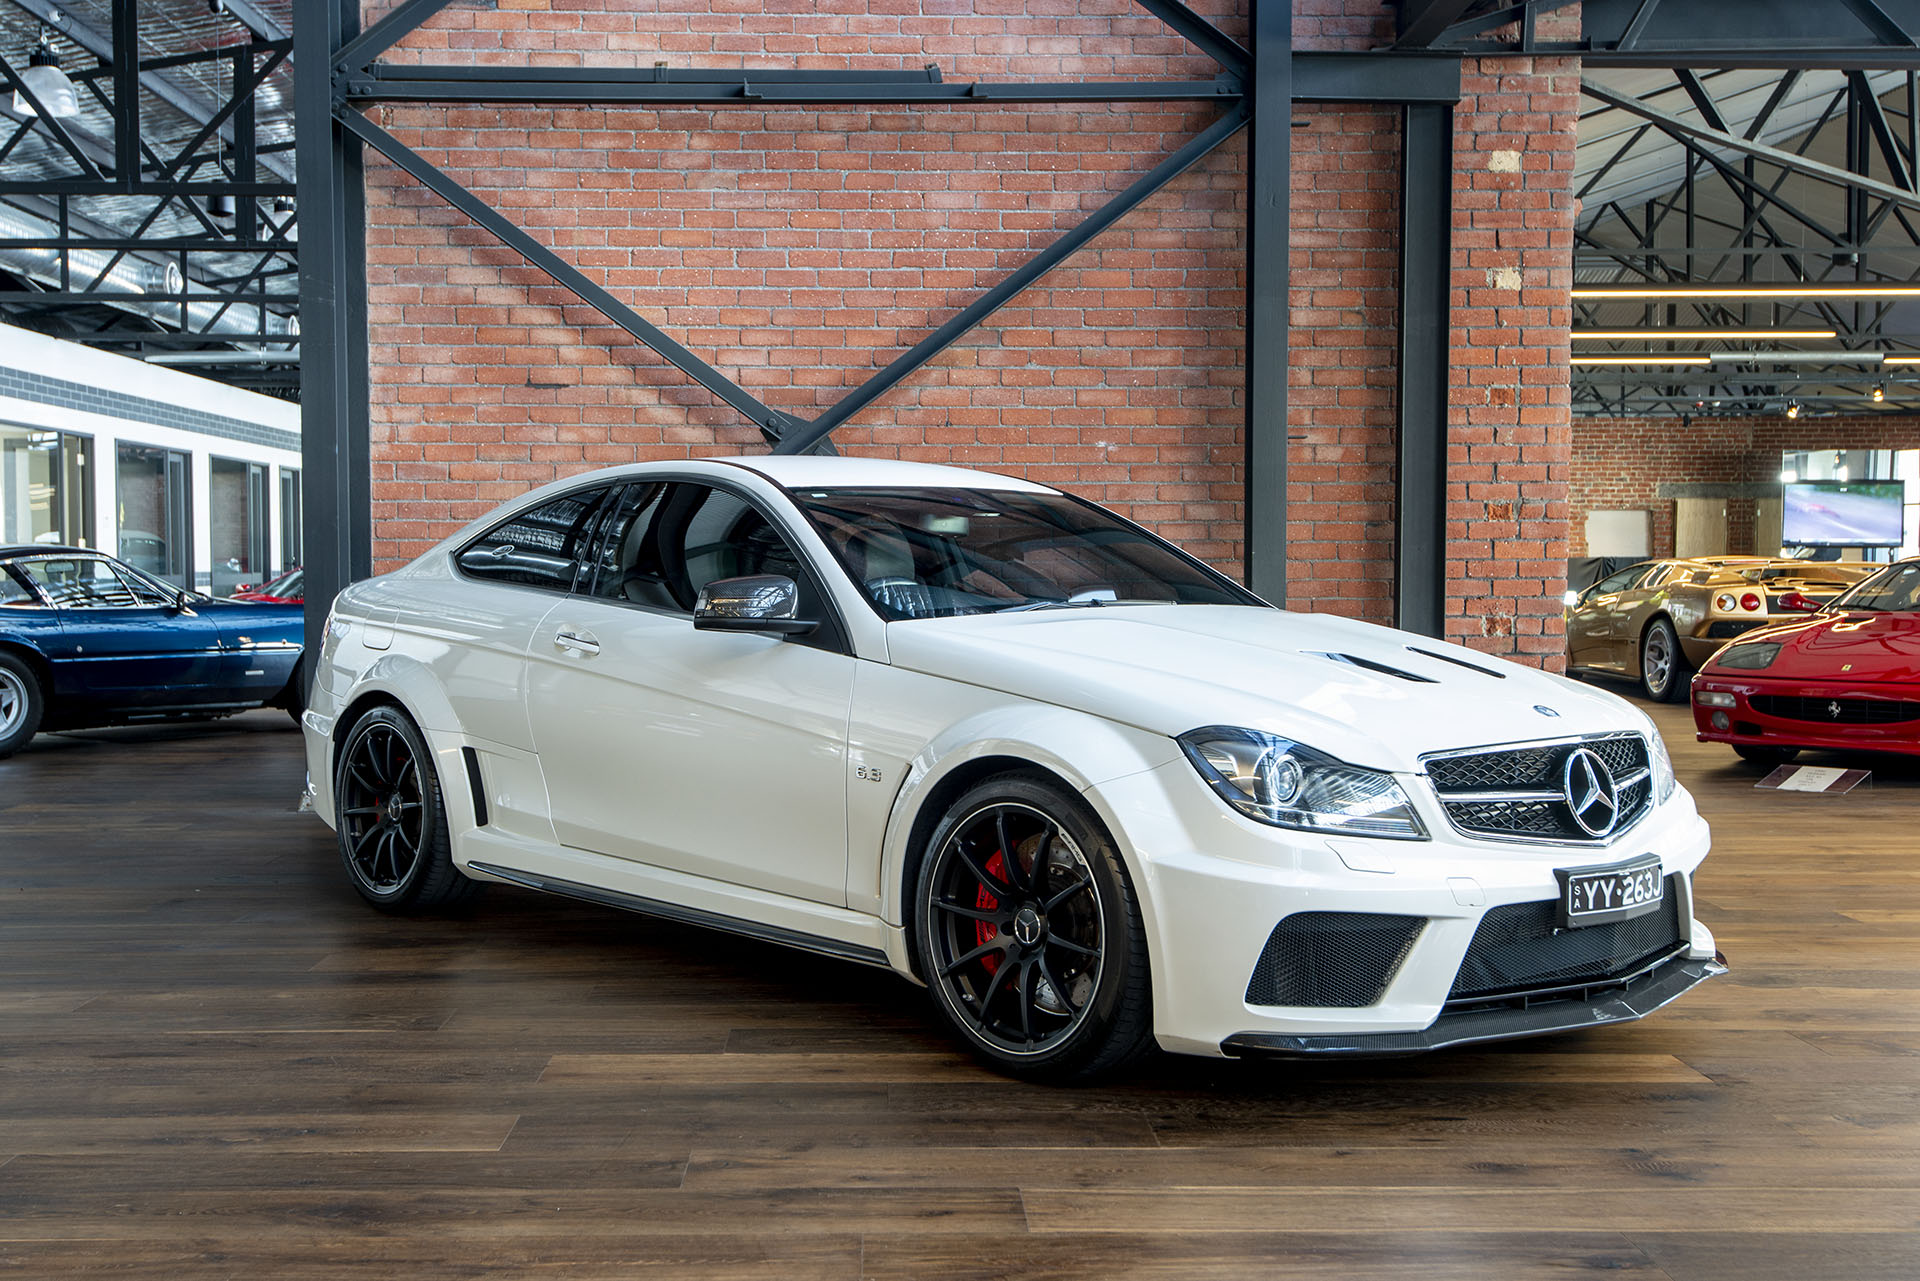 2012 mercedes benz c63 amg black series richmonds classic and prestige cars storage and. Black Bedroom Furniture Sets. Home Design Ideas